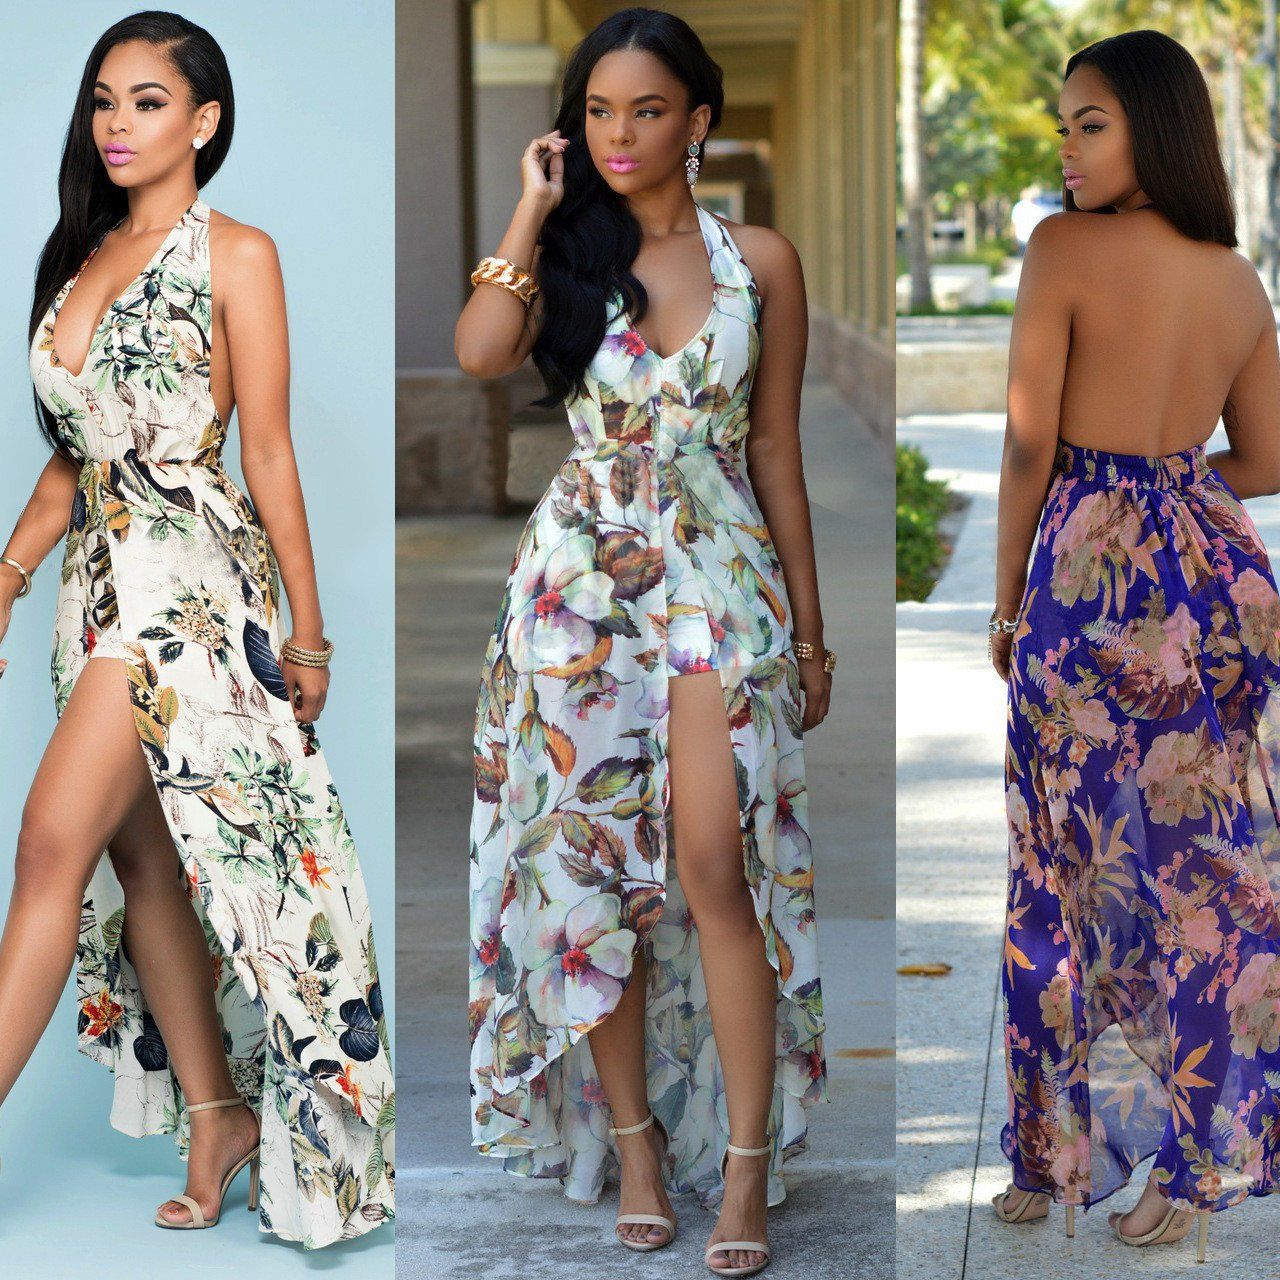 e10db68699 Sexy Backless Floral Halter Sheer Chiffon dress with shorts – On Trends  Avenue